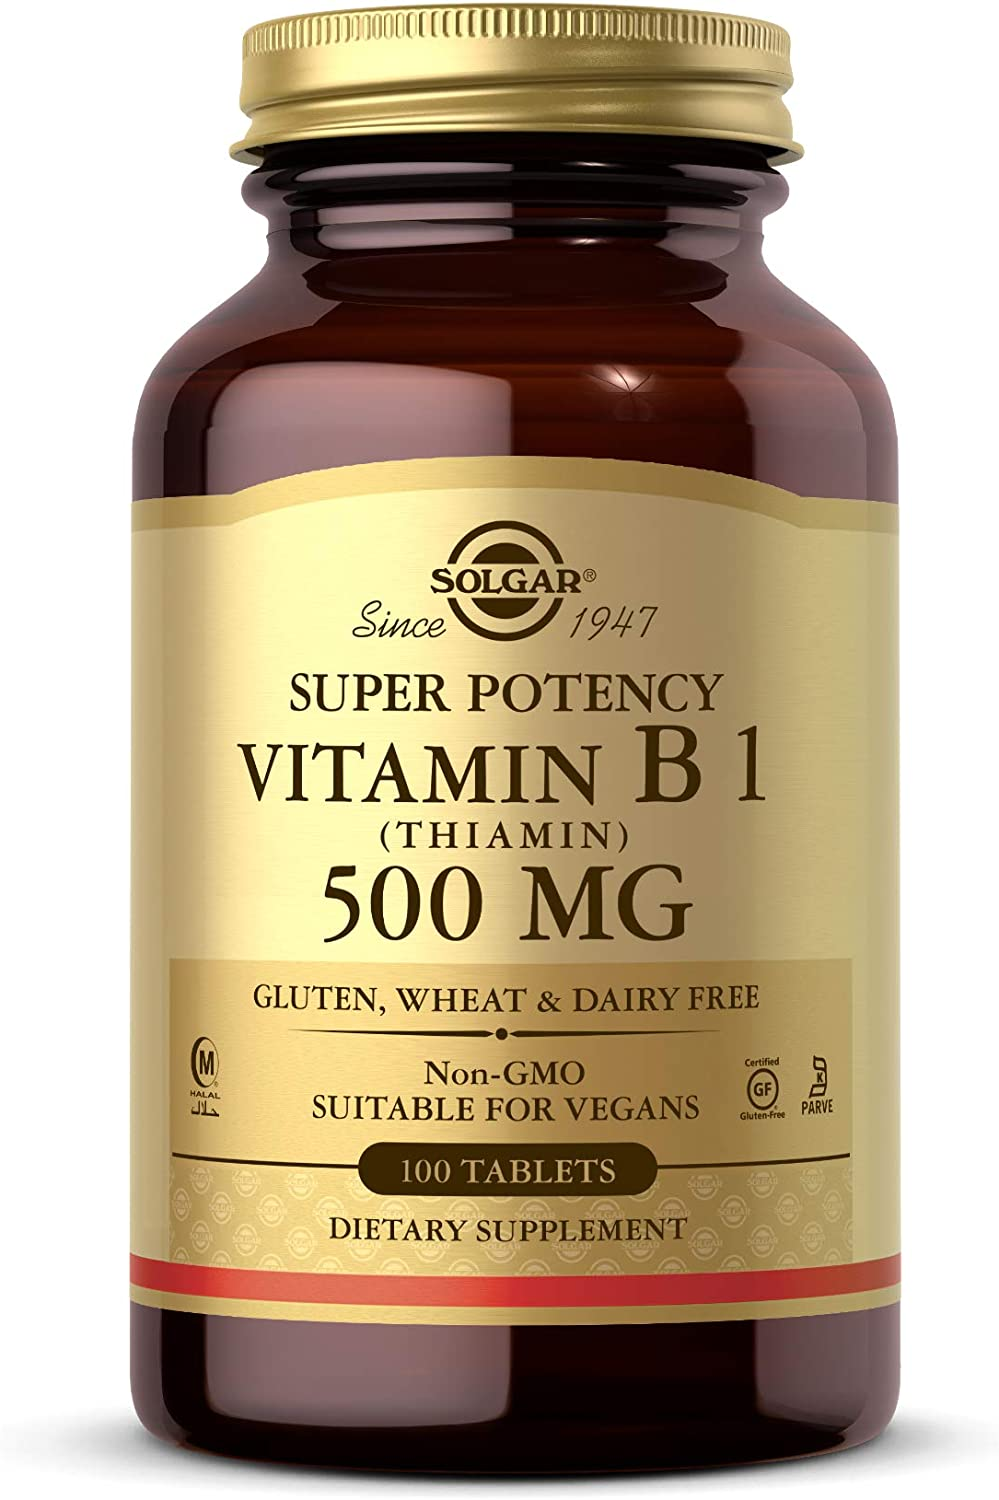 Solgar Vitamin B1 (Thiamin) 500 mg, 100 Tablets - Energy Metabolism, Healthy Nervous System, Overall Well-Being - Super Potency - Non-GMO, Vegan, Gluten Free, Dairy Free - 100 Servings